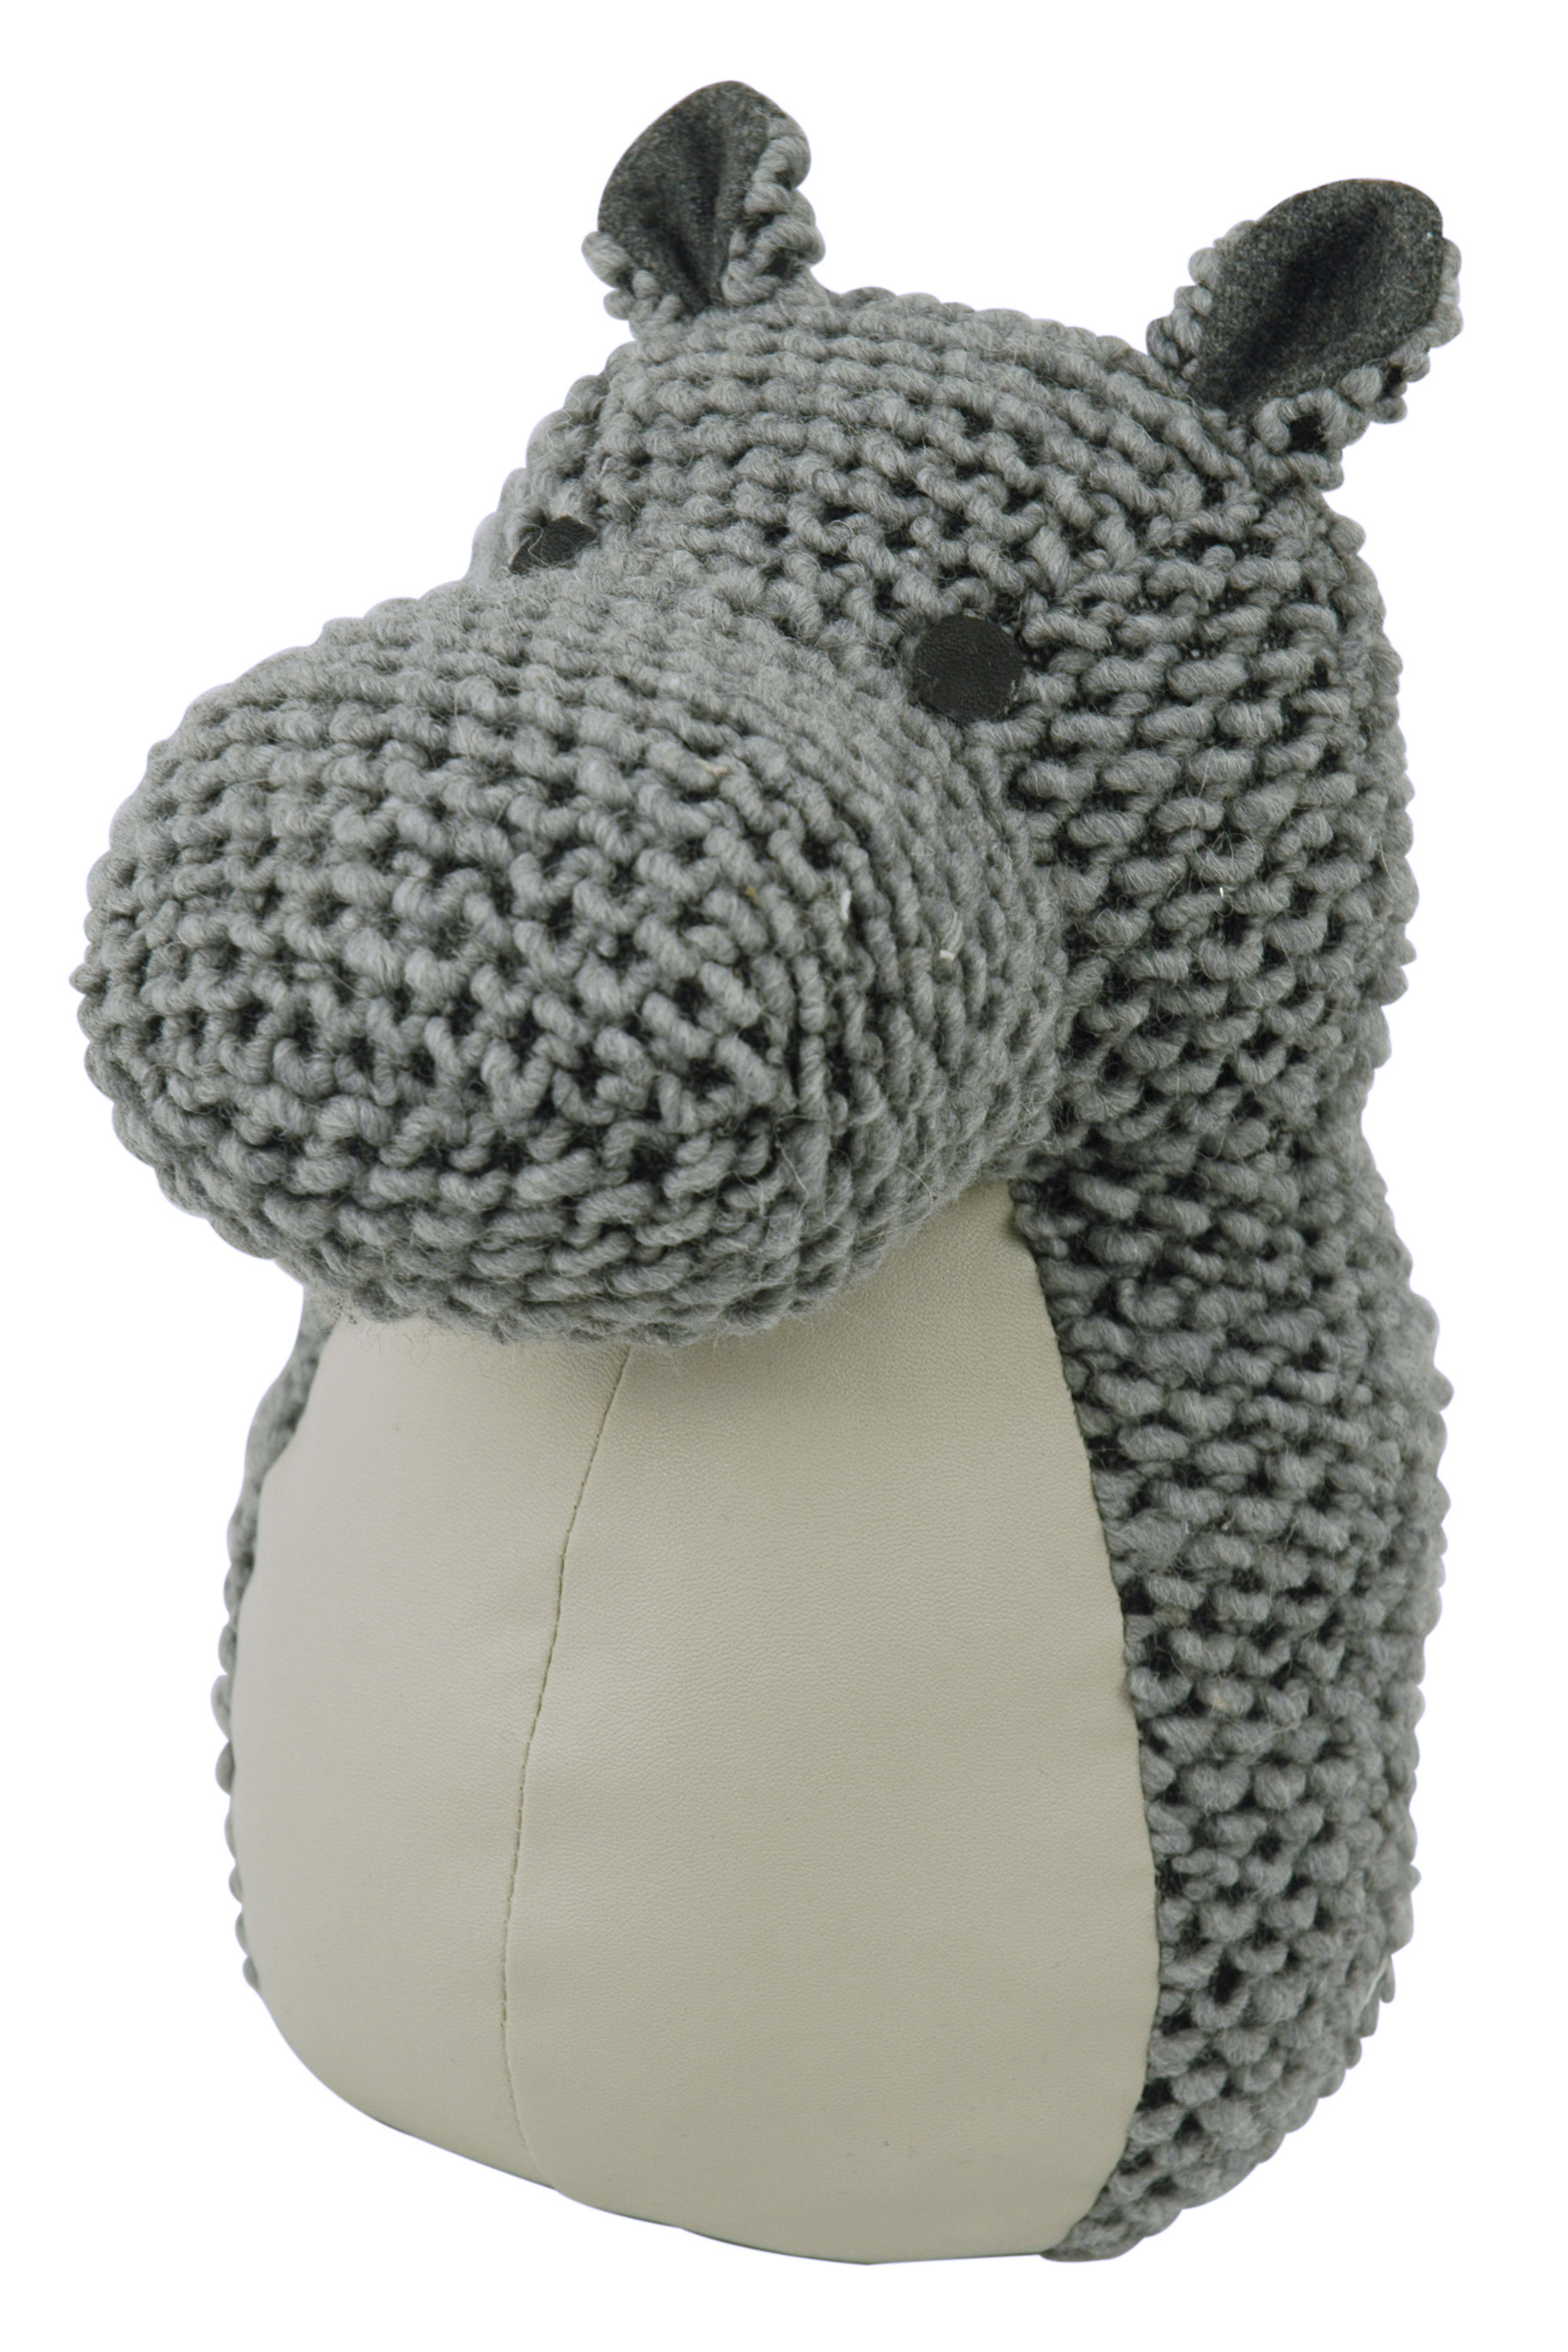 Formahouse Gifts Novelty ROCKY HIPPO Door Book Stopper